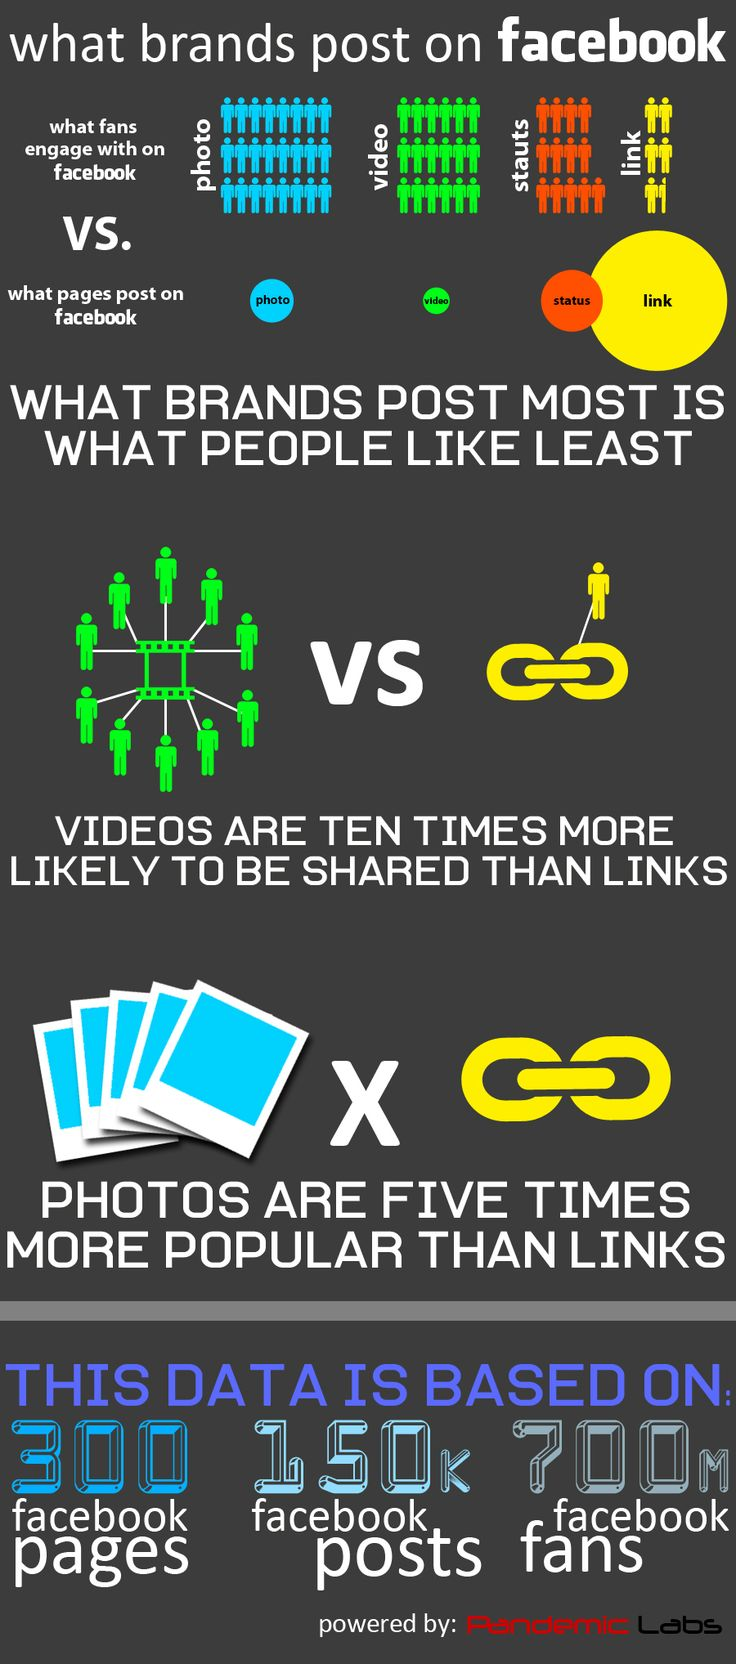 Create infographic videos no watermark